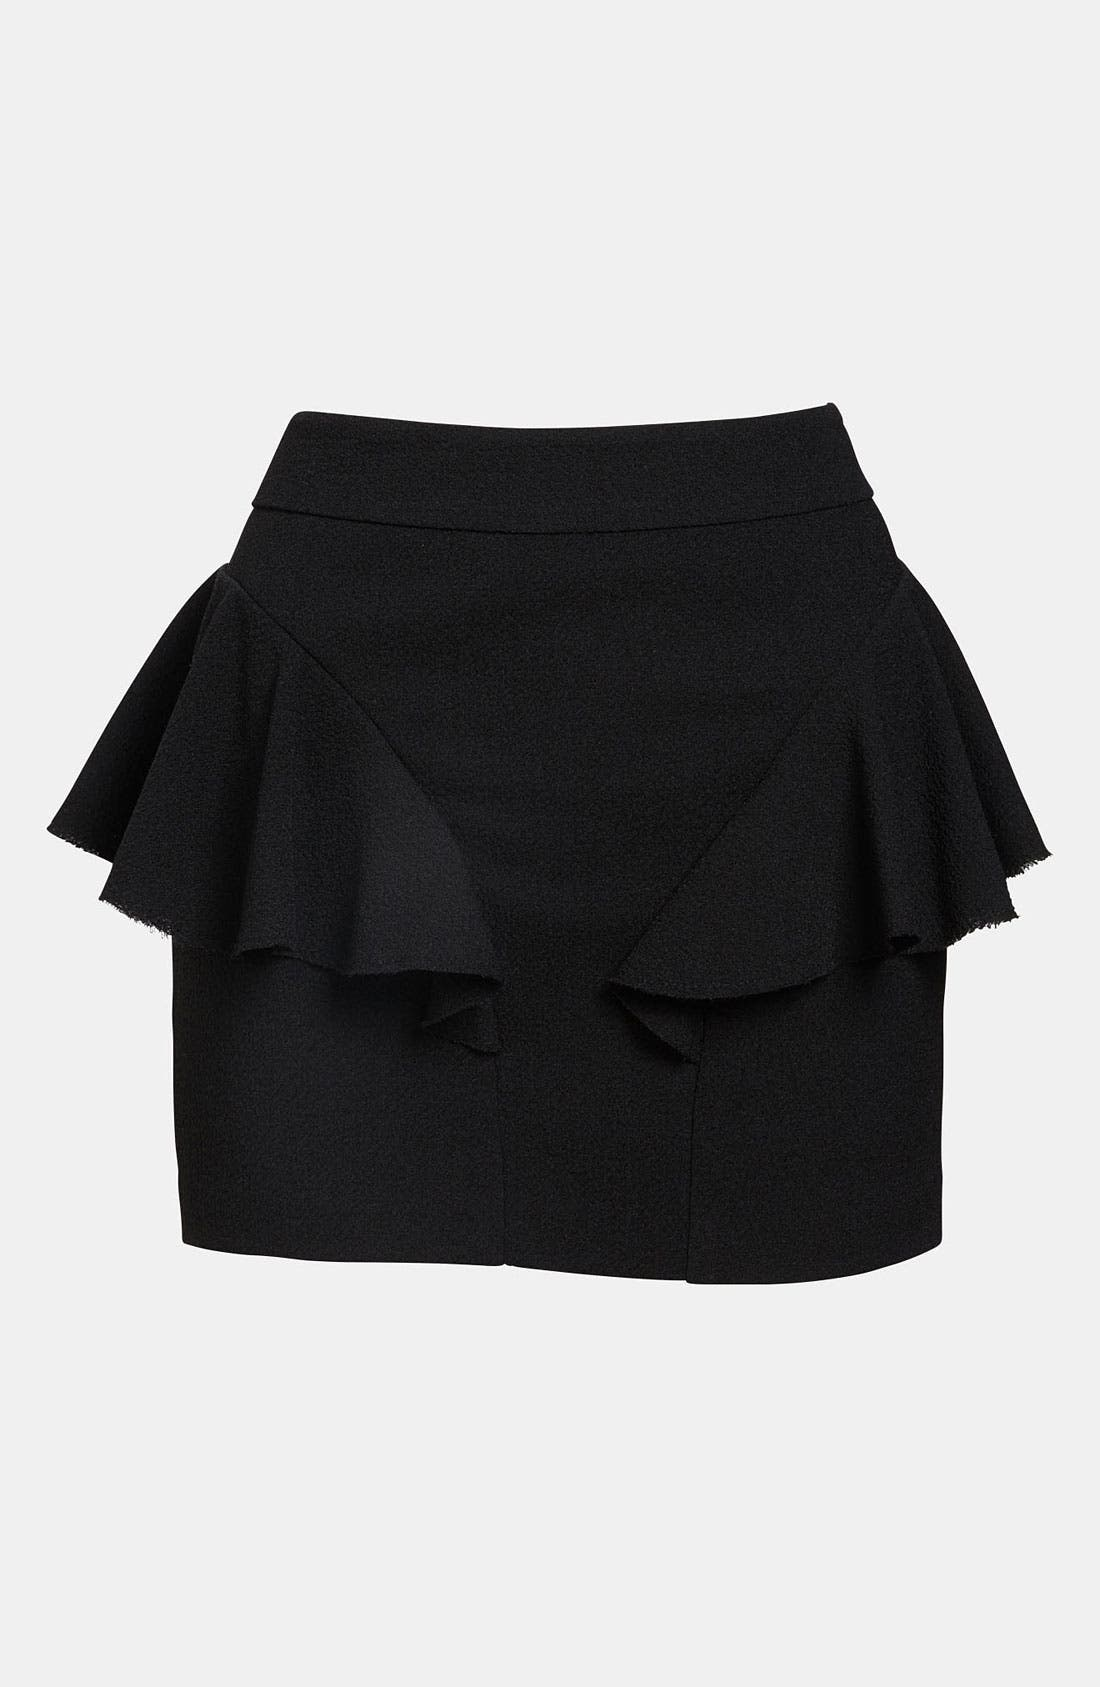 Alternate Image 1 Selected - Tildon Side Ruffle Skirt